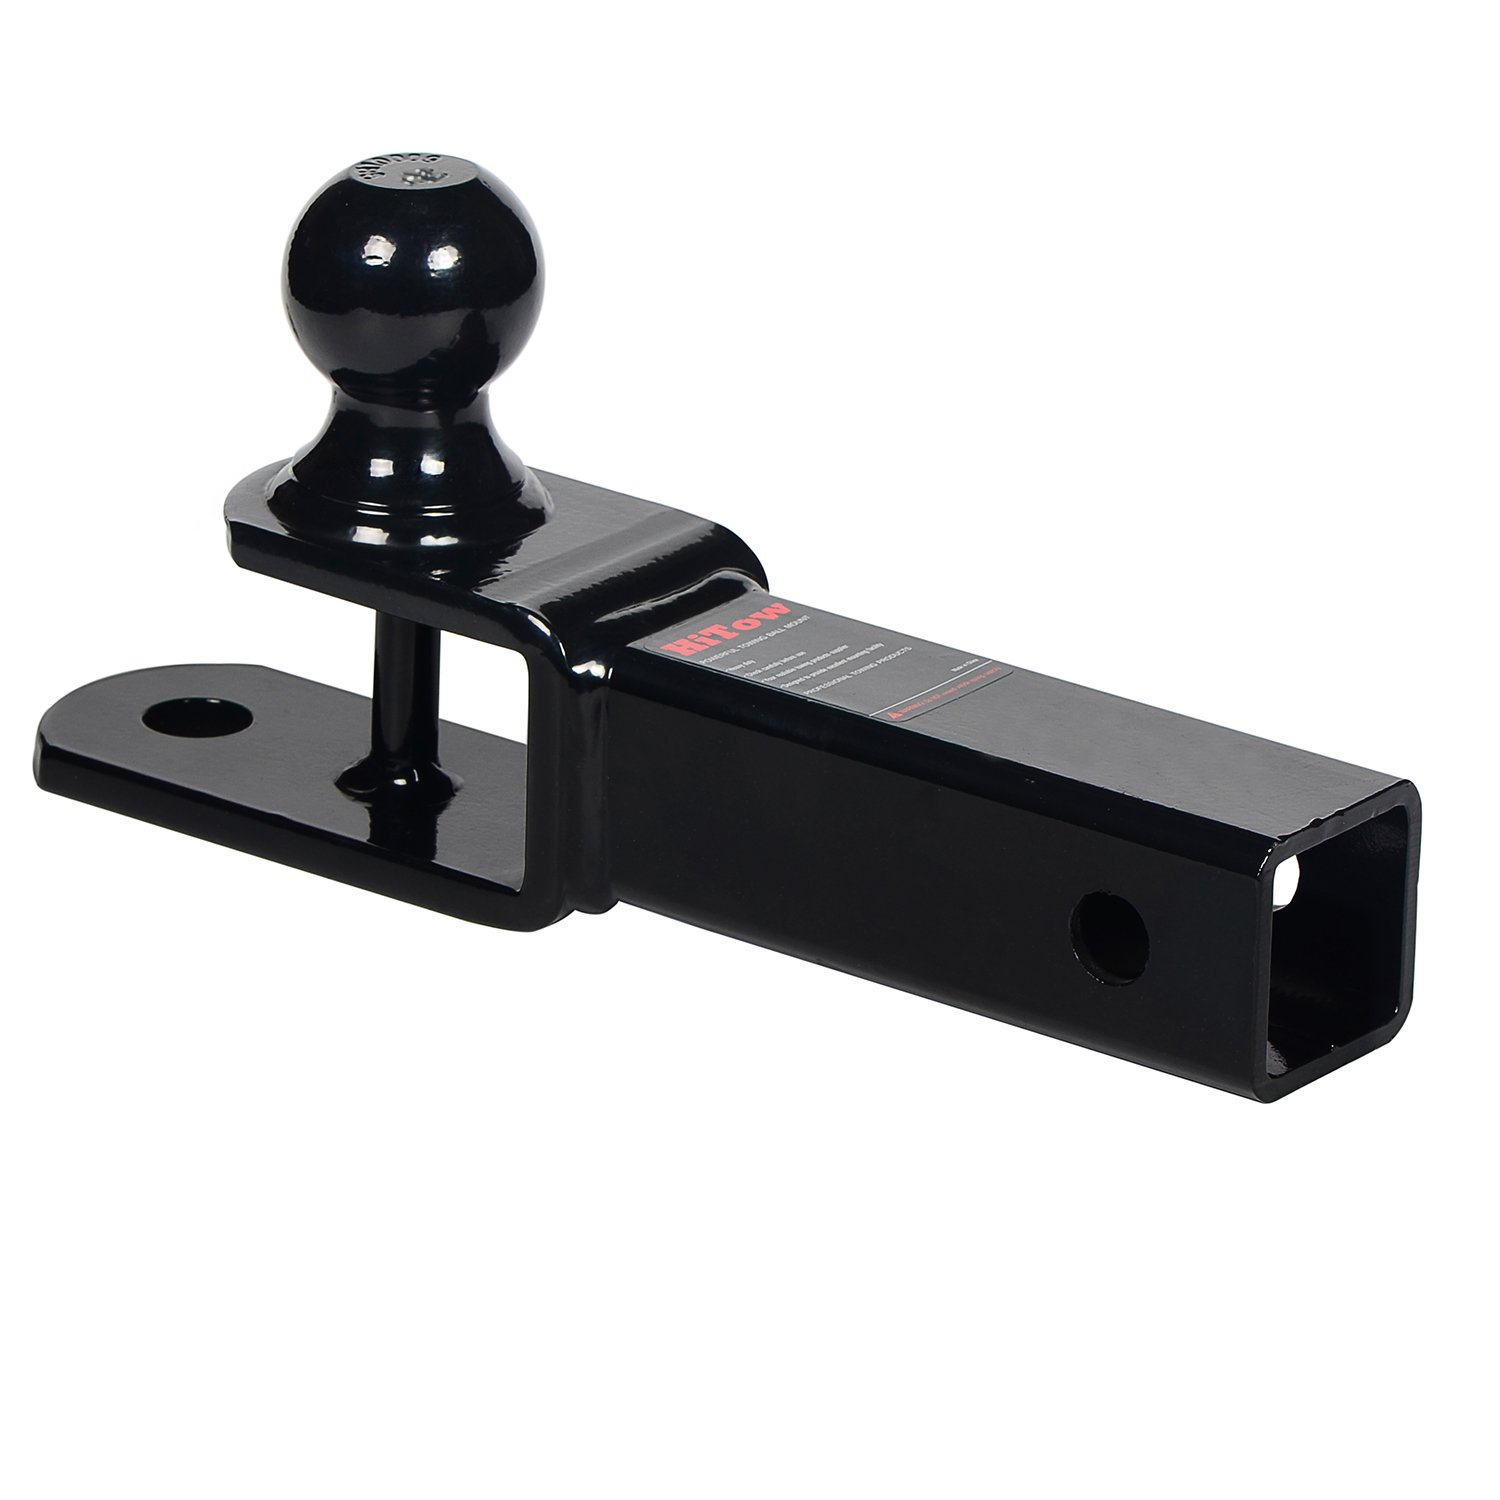 Hollow Shank HiTow 3-in-1 ATV Towing Hitch Ball Mount adapter with 2 Ball